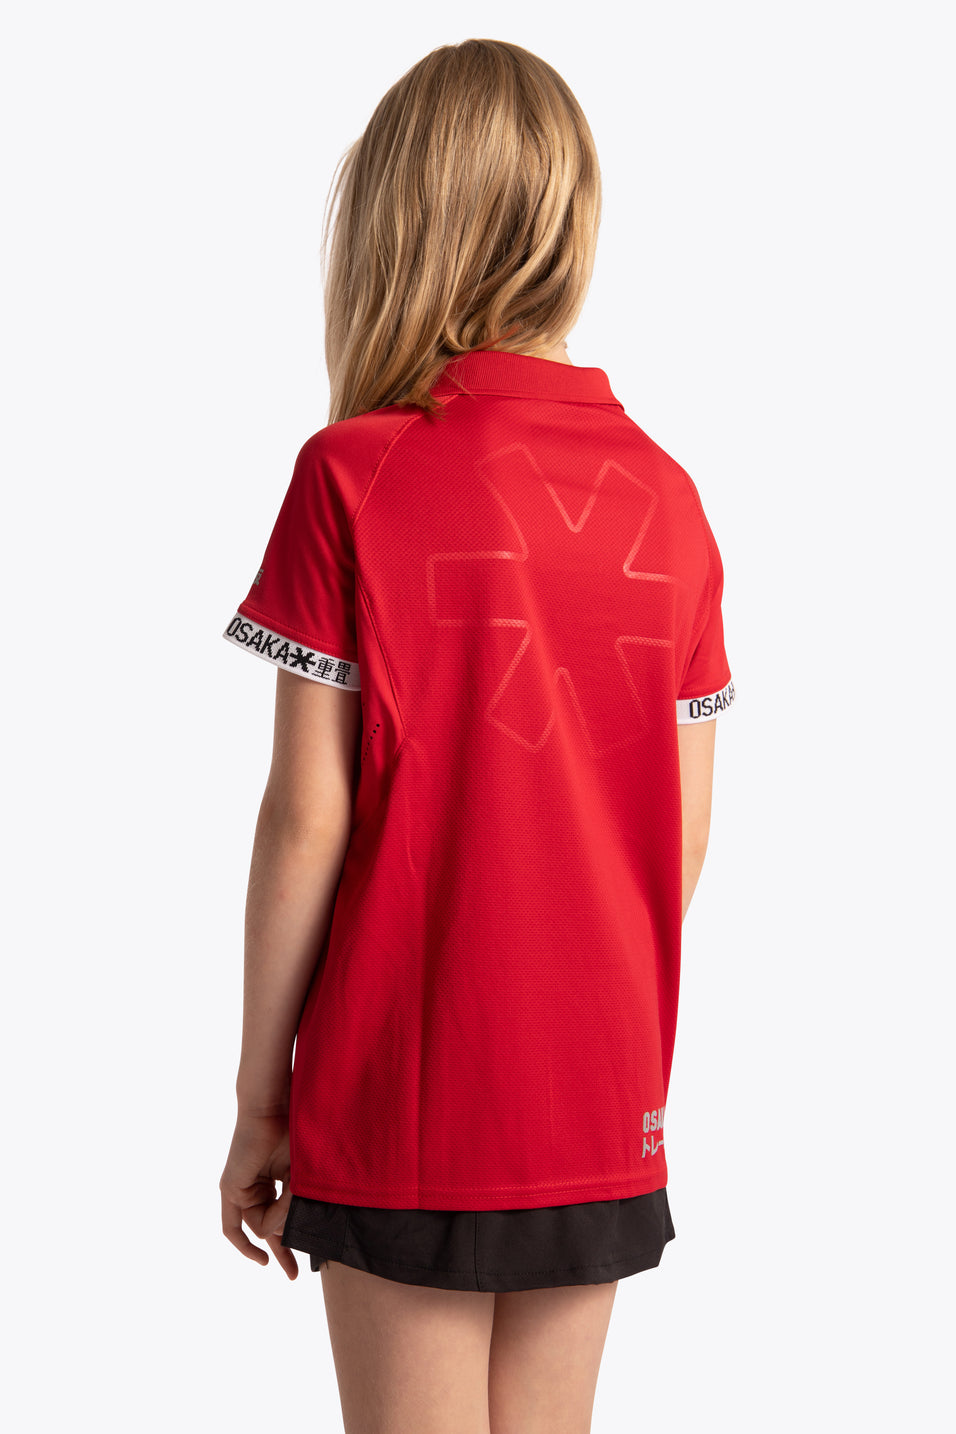 Deshi Polo Jersey - Red